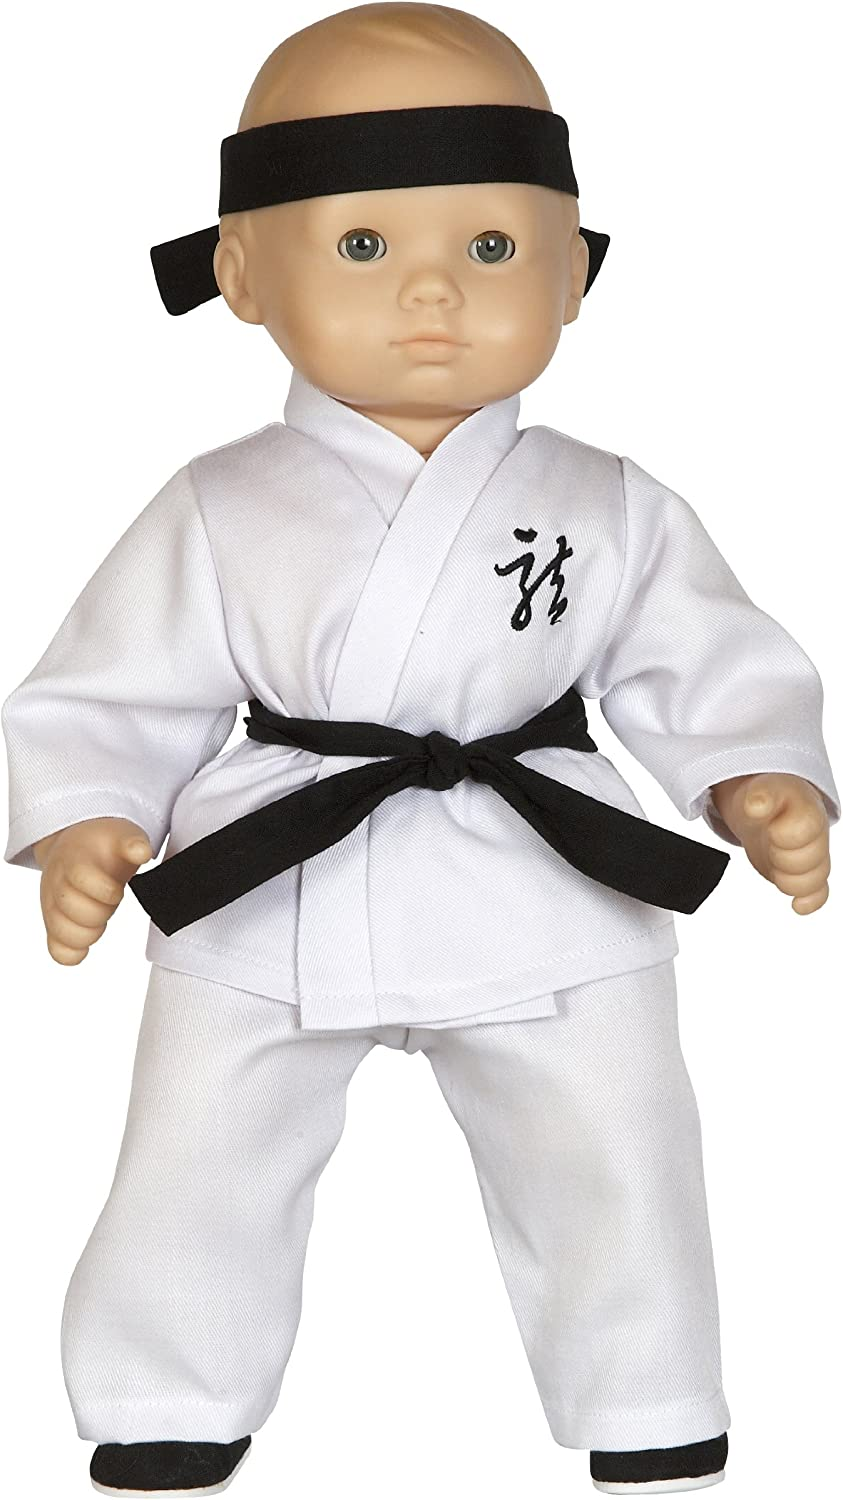 Handmade Doll Clothes Karate Uniform Gi Judo TKD Assorted Colors fit 15 American Girl Bitty Baby Dolls